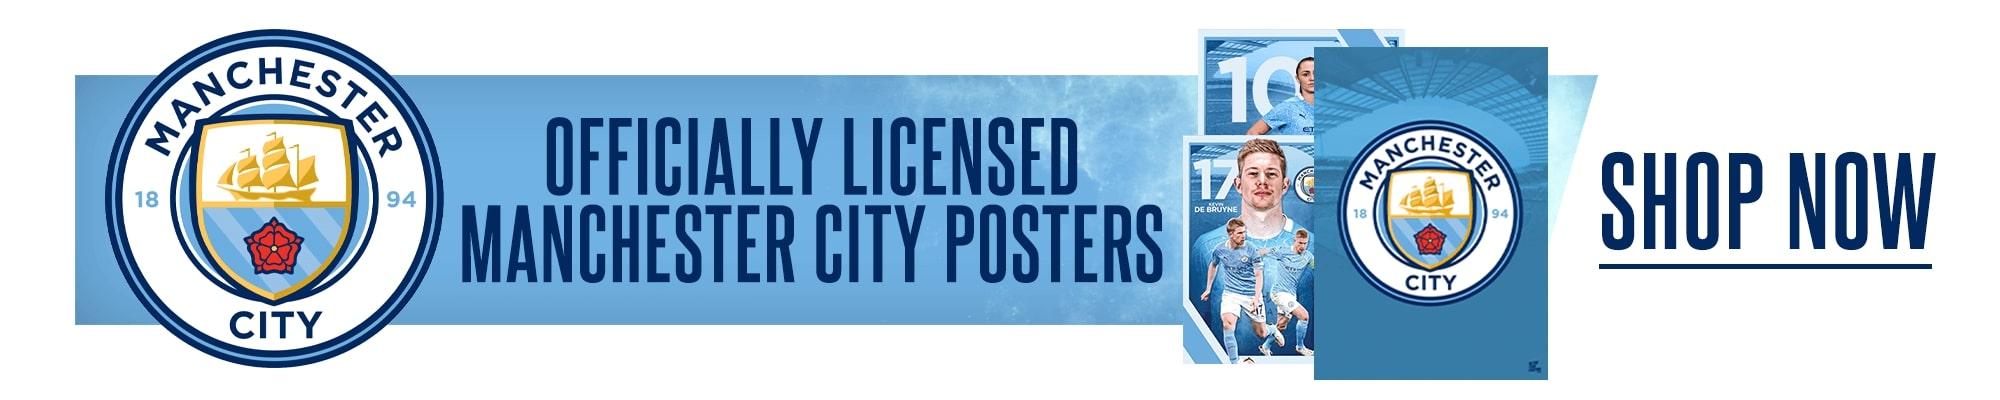 Official Manchester City Posters